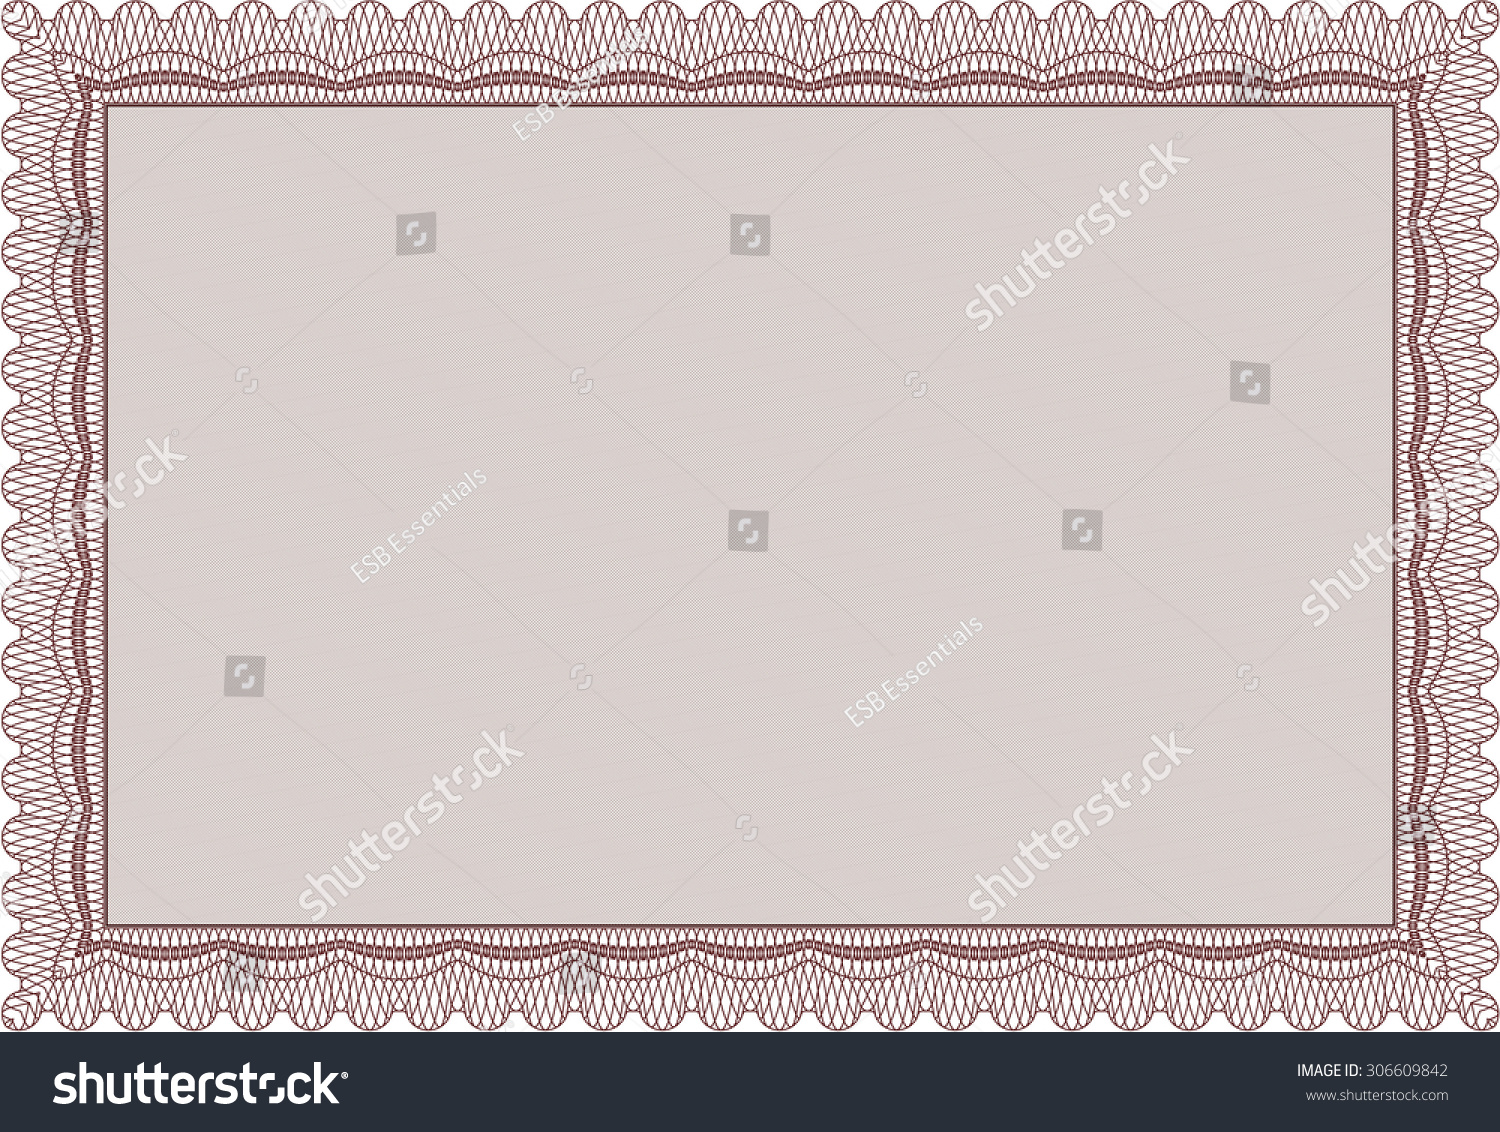 Stock share certificate template sop format in word company order stock share certificate template contingency microsoft thank you stock vector diploma template with background retro design yadclub Image collections